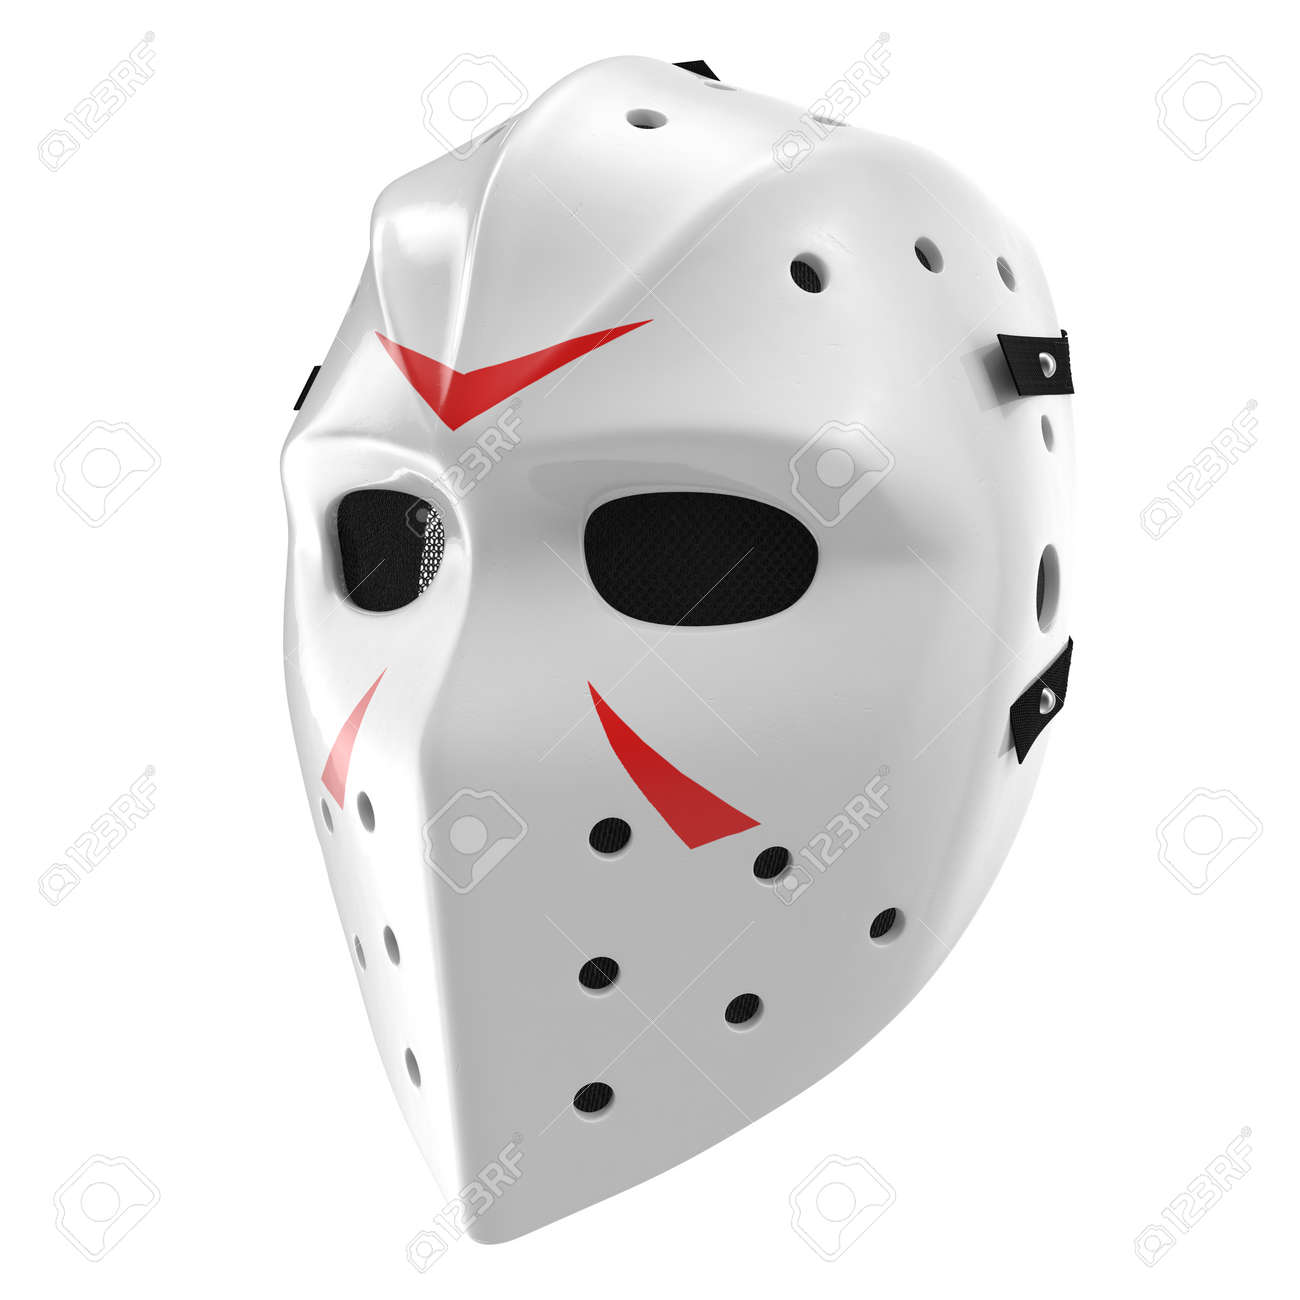 scary hockey halloween mask on white background. 3d illustration